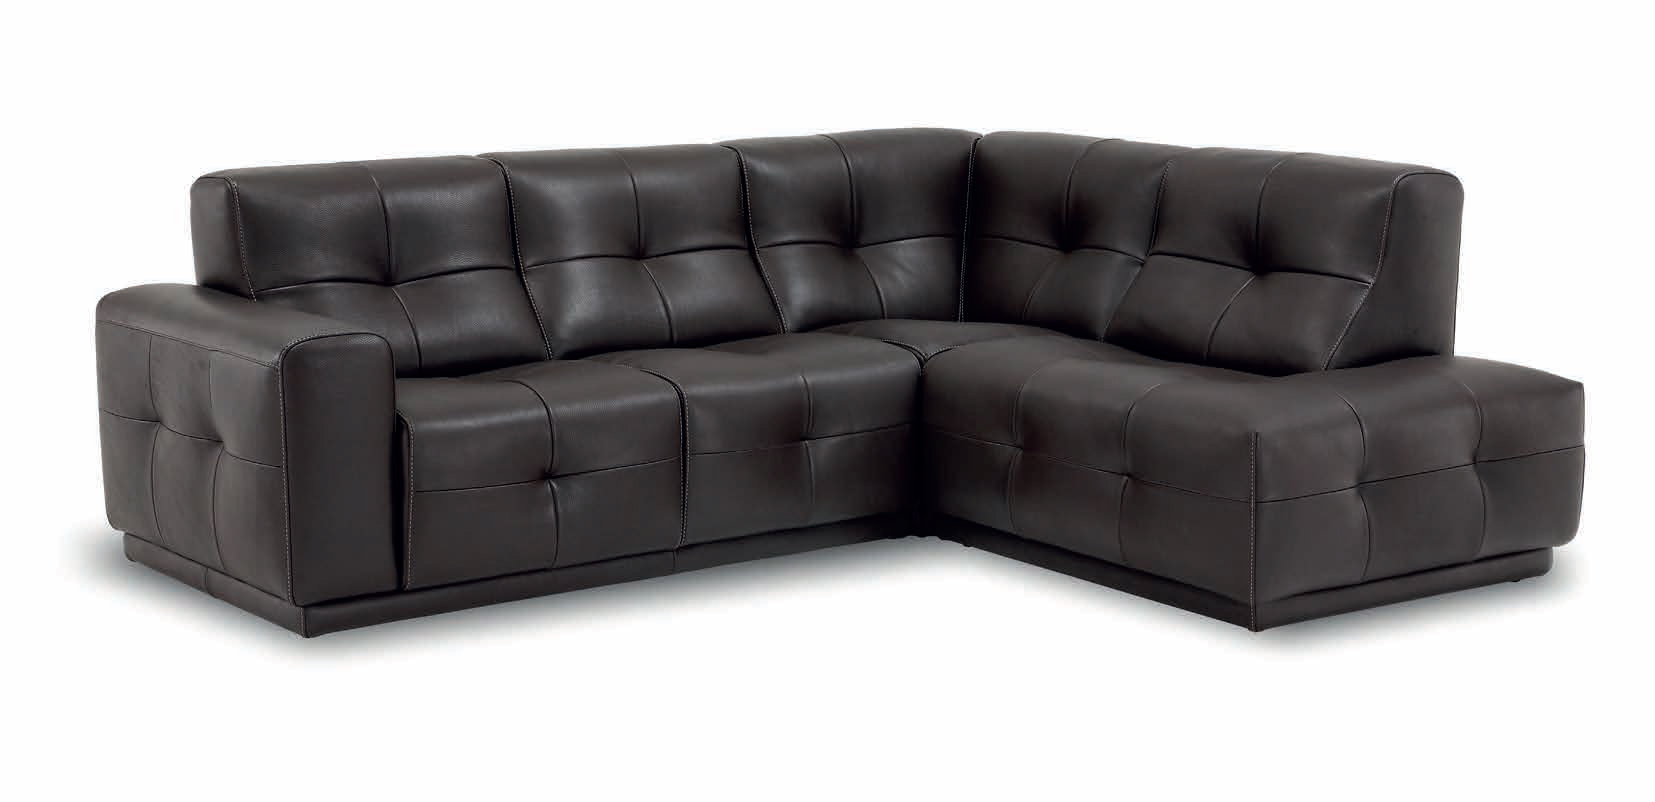 Sofas On Gumtree London Incanto Leather Sofa C Furniture Modern Contemporary - Thesofa